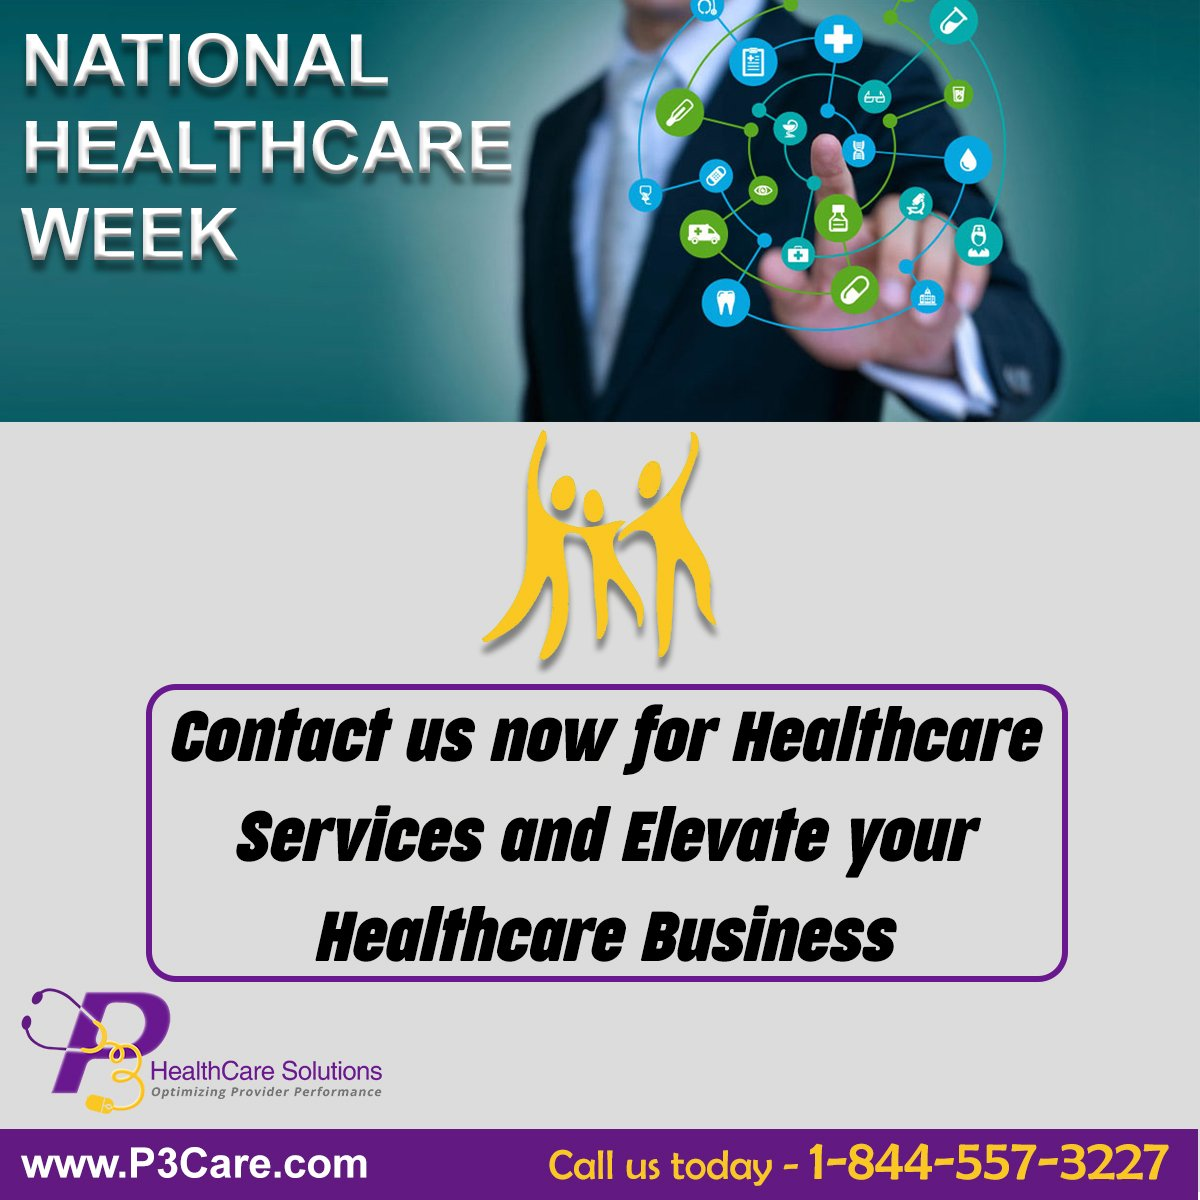 National health center week is the day of celebrating all the achievements in the healthcare industry. If you need professional health care services, contact P3Care. Call us at 1-844-557-3227 and get expertise in medical billing services. #P3Care<br>http://pic.twitter.com/4GSfspydcV